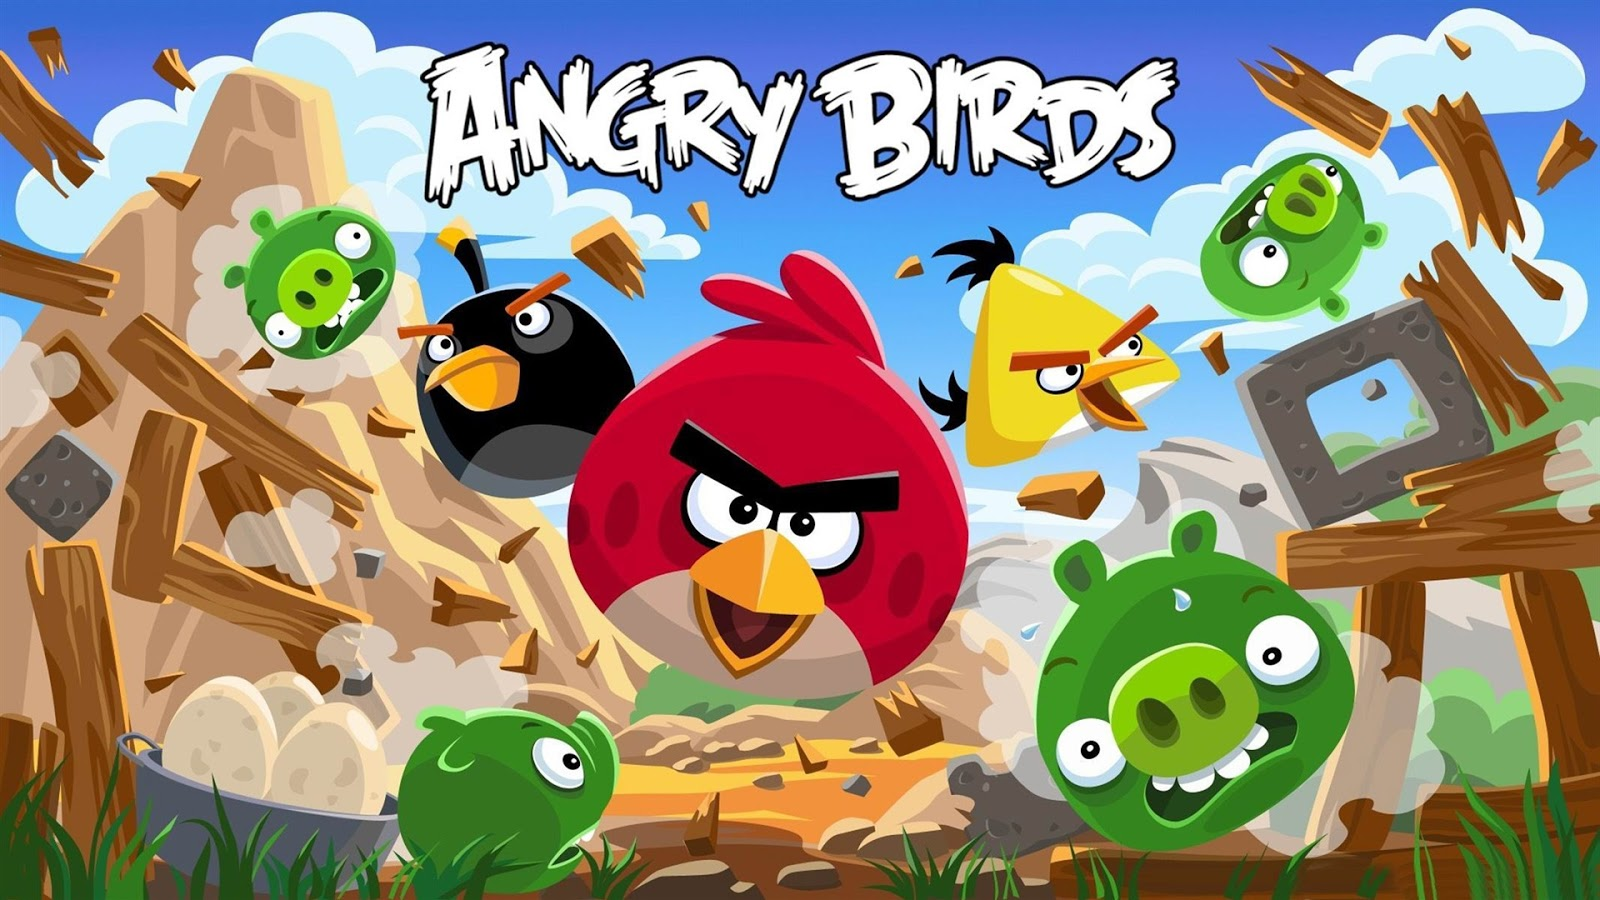 angry birds wallpapers angry birds wallpapers angry birds wallpapers